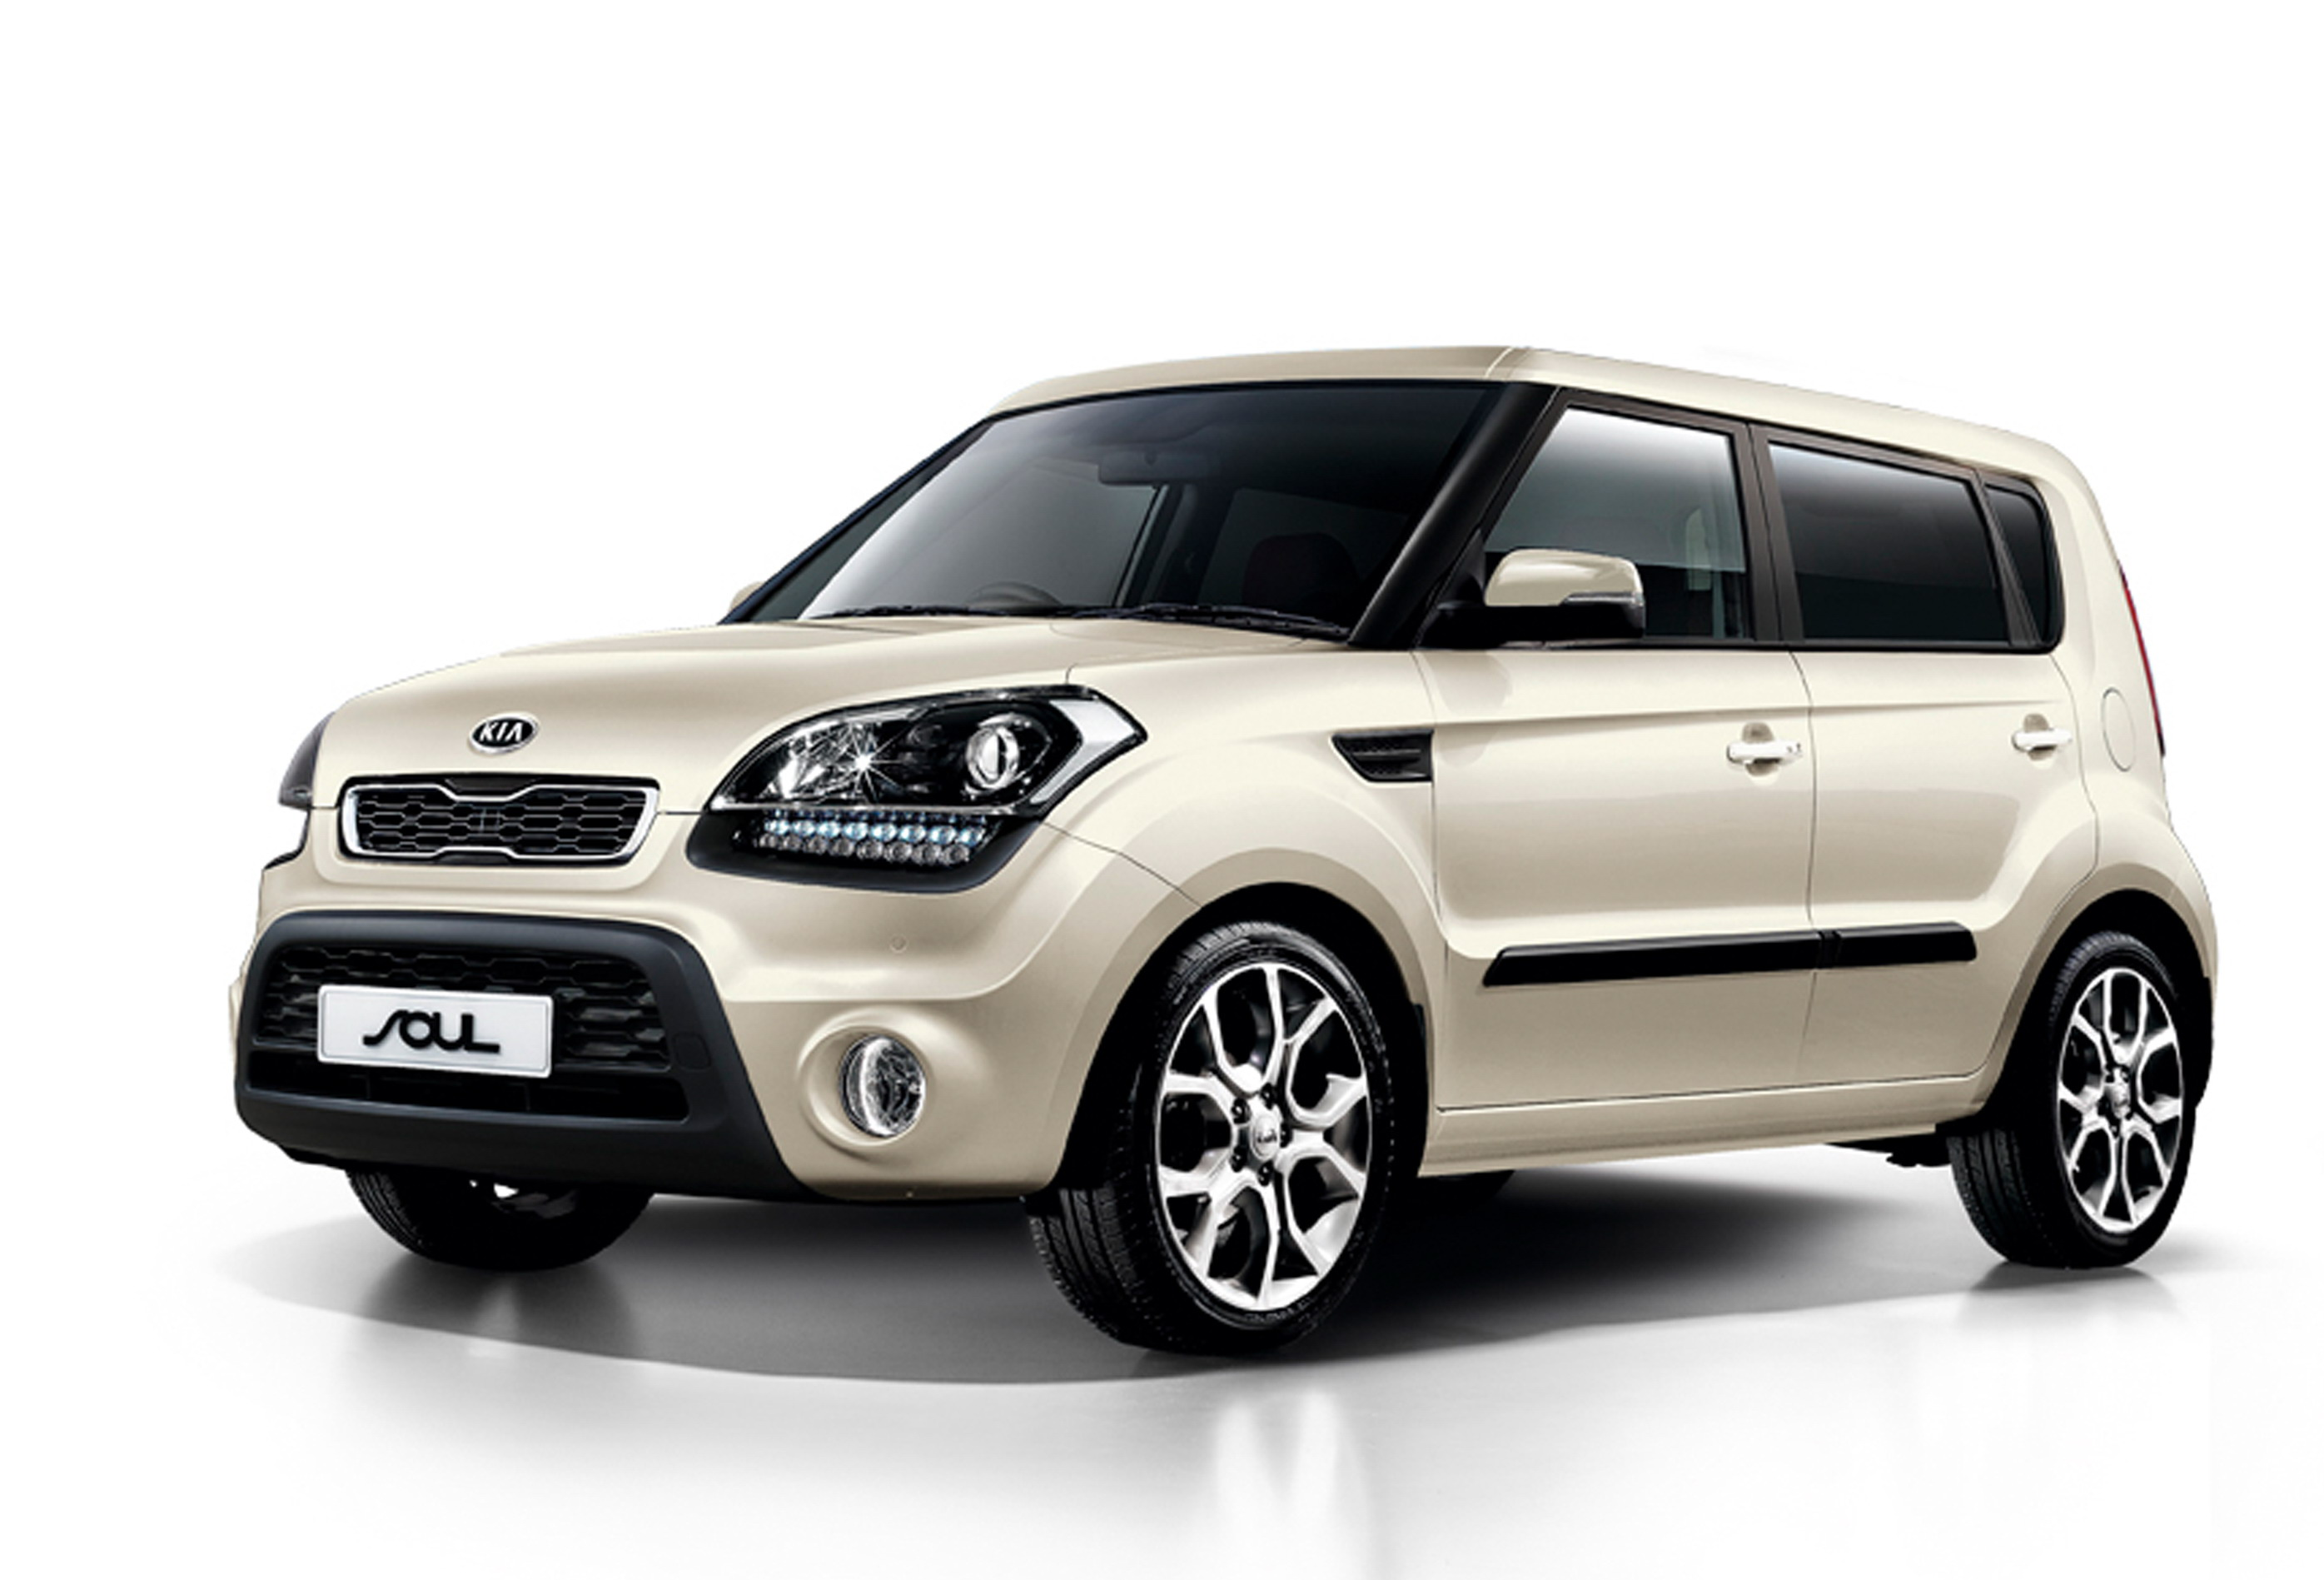 2013 kia soul shaker review top speed. Black Bedroom Furniture Sets. Home Design Ideas